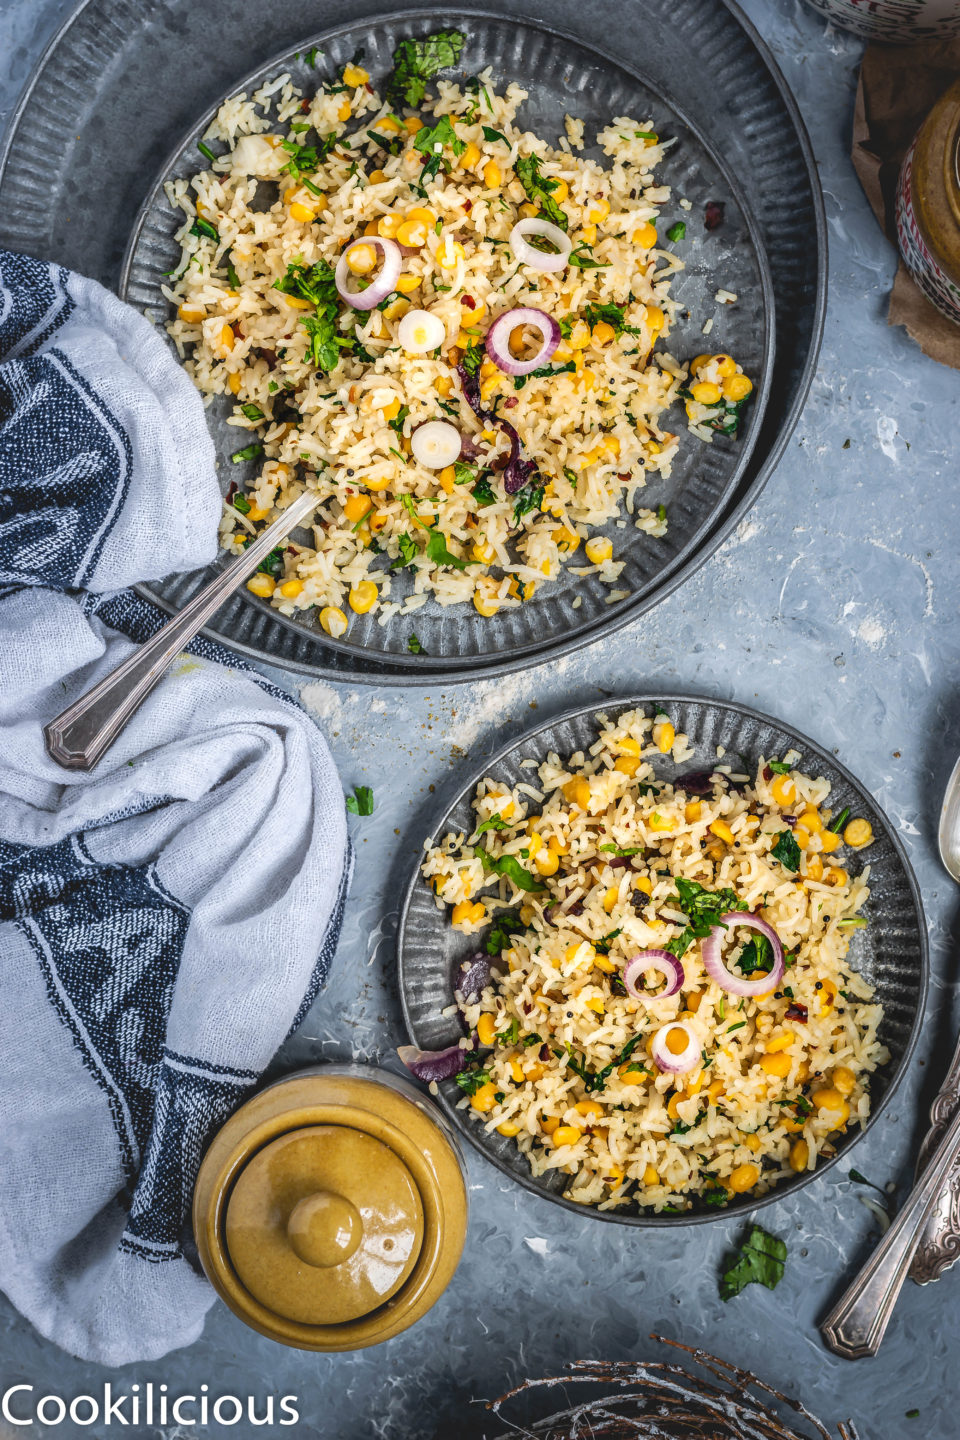 flat lay image of one big and one small plate with Cilantro, Spinach & Lentil Rice in it.